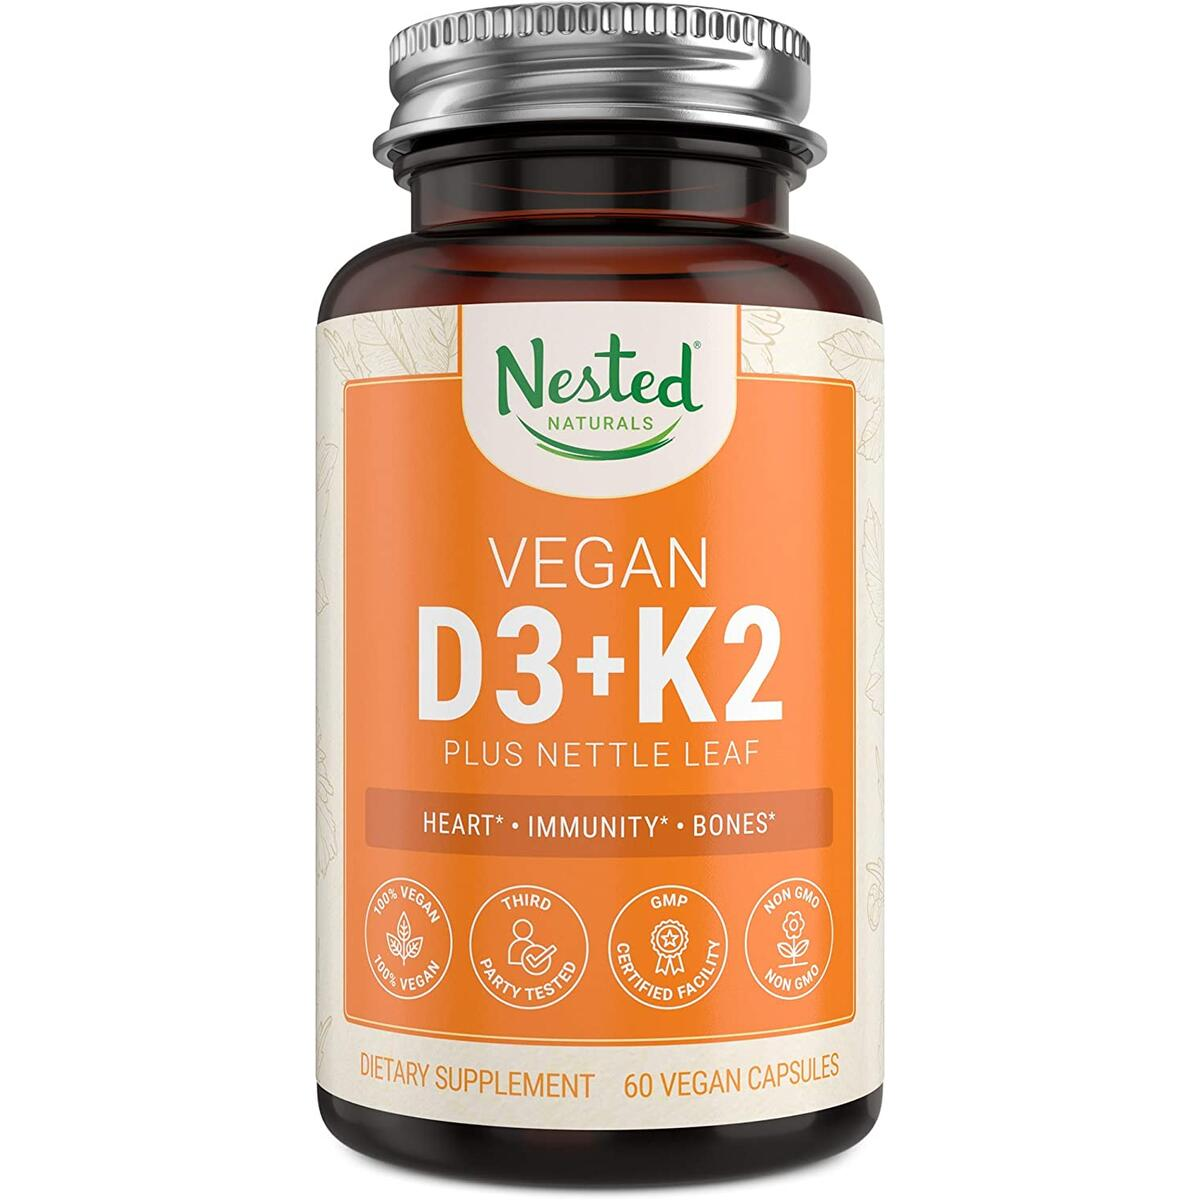 Nested Naturals Vitamin D3+K2 Plus Nettle Leaf Supplement   5000 IU Vitamin D-3 Made from Chickpeas, with Vitamin K-2 MK7